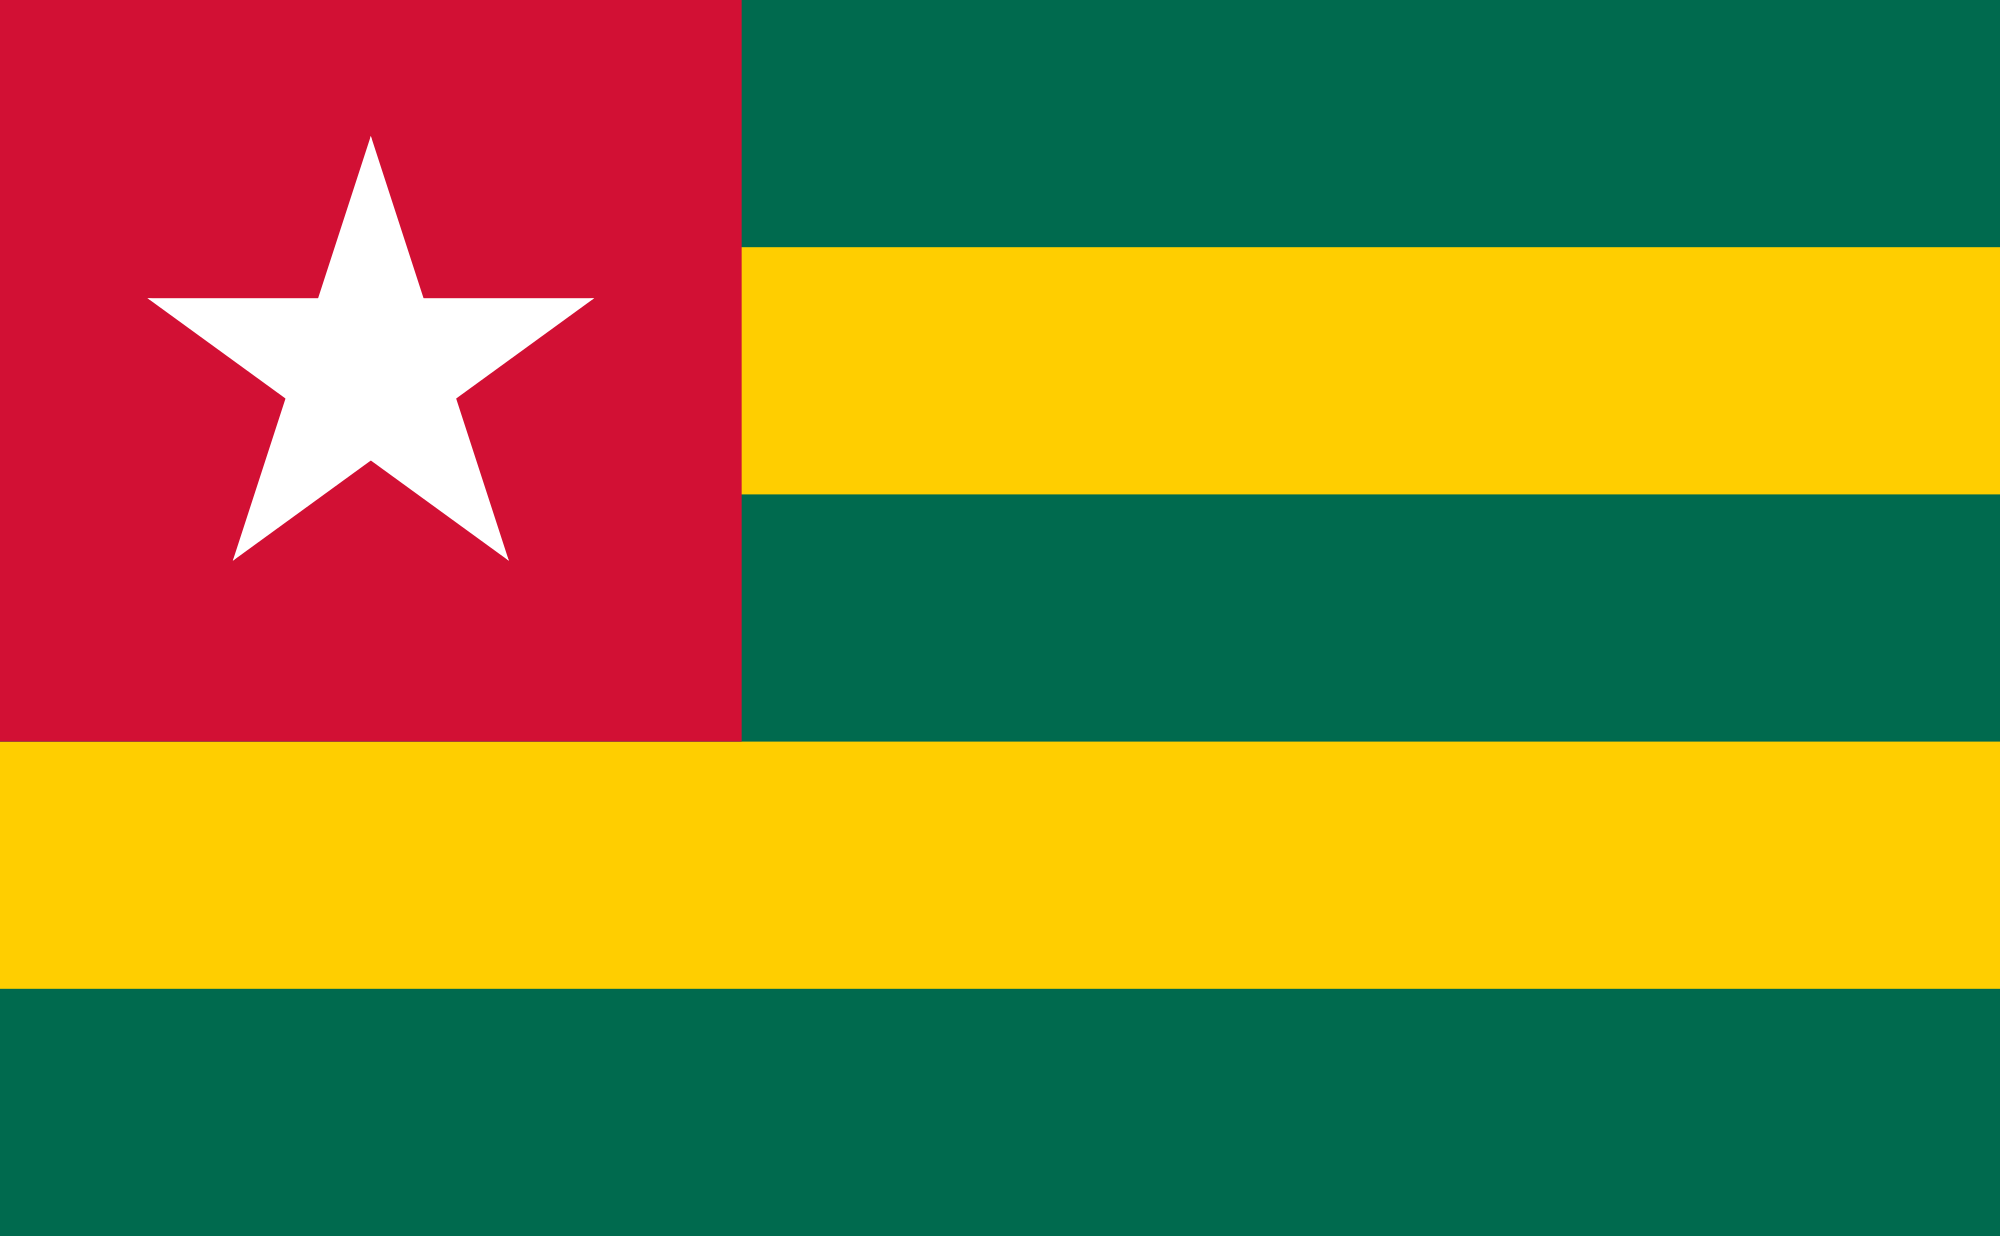 ICSID case filed against Togo